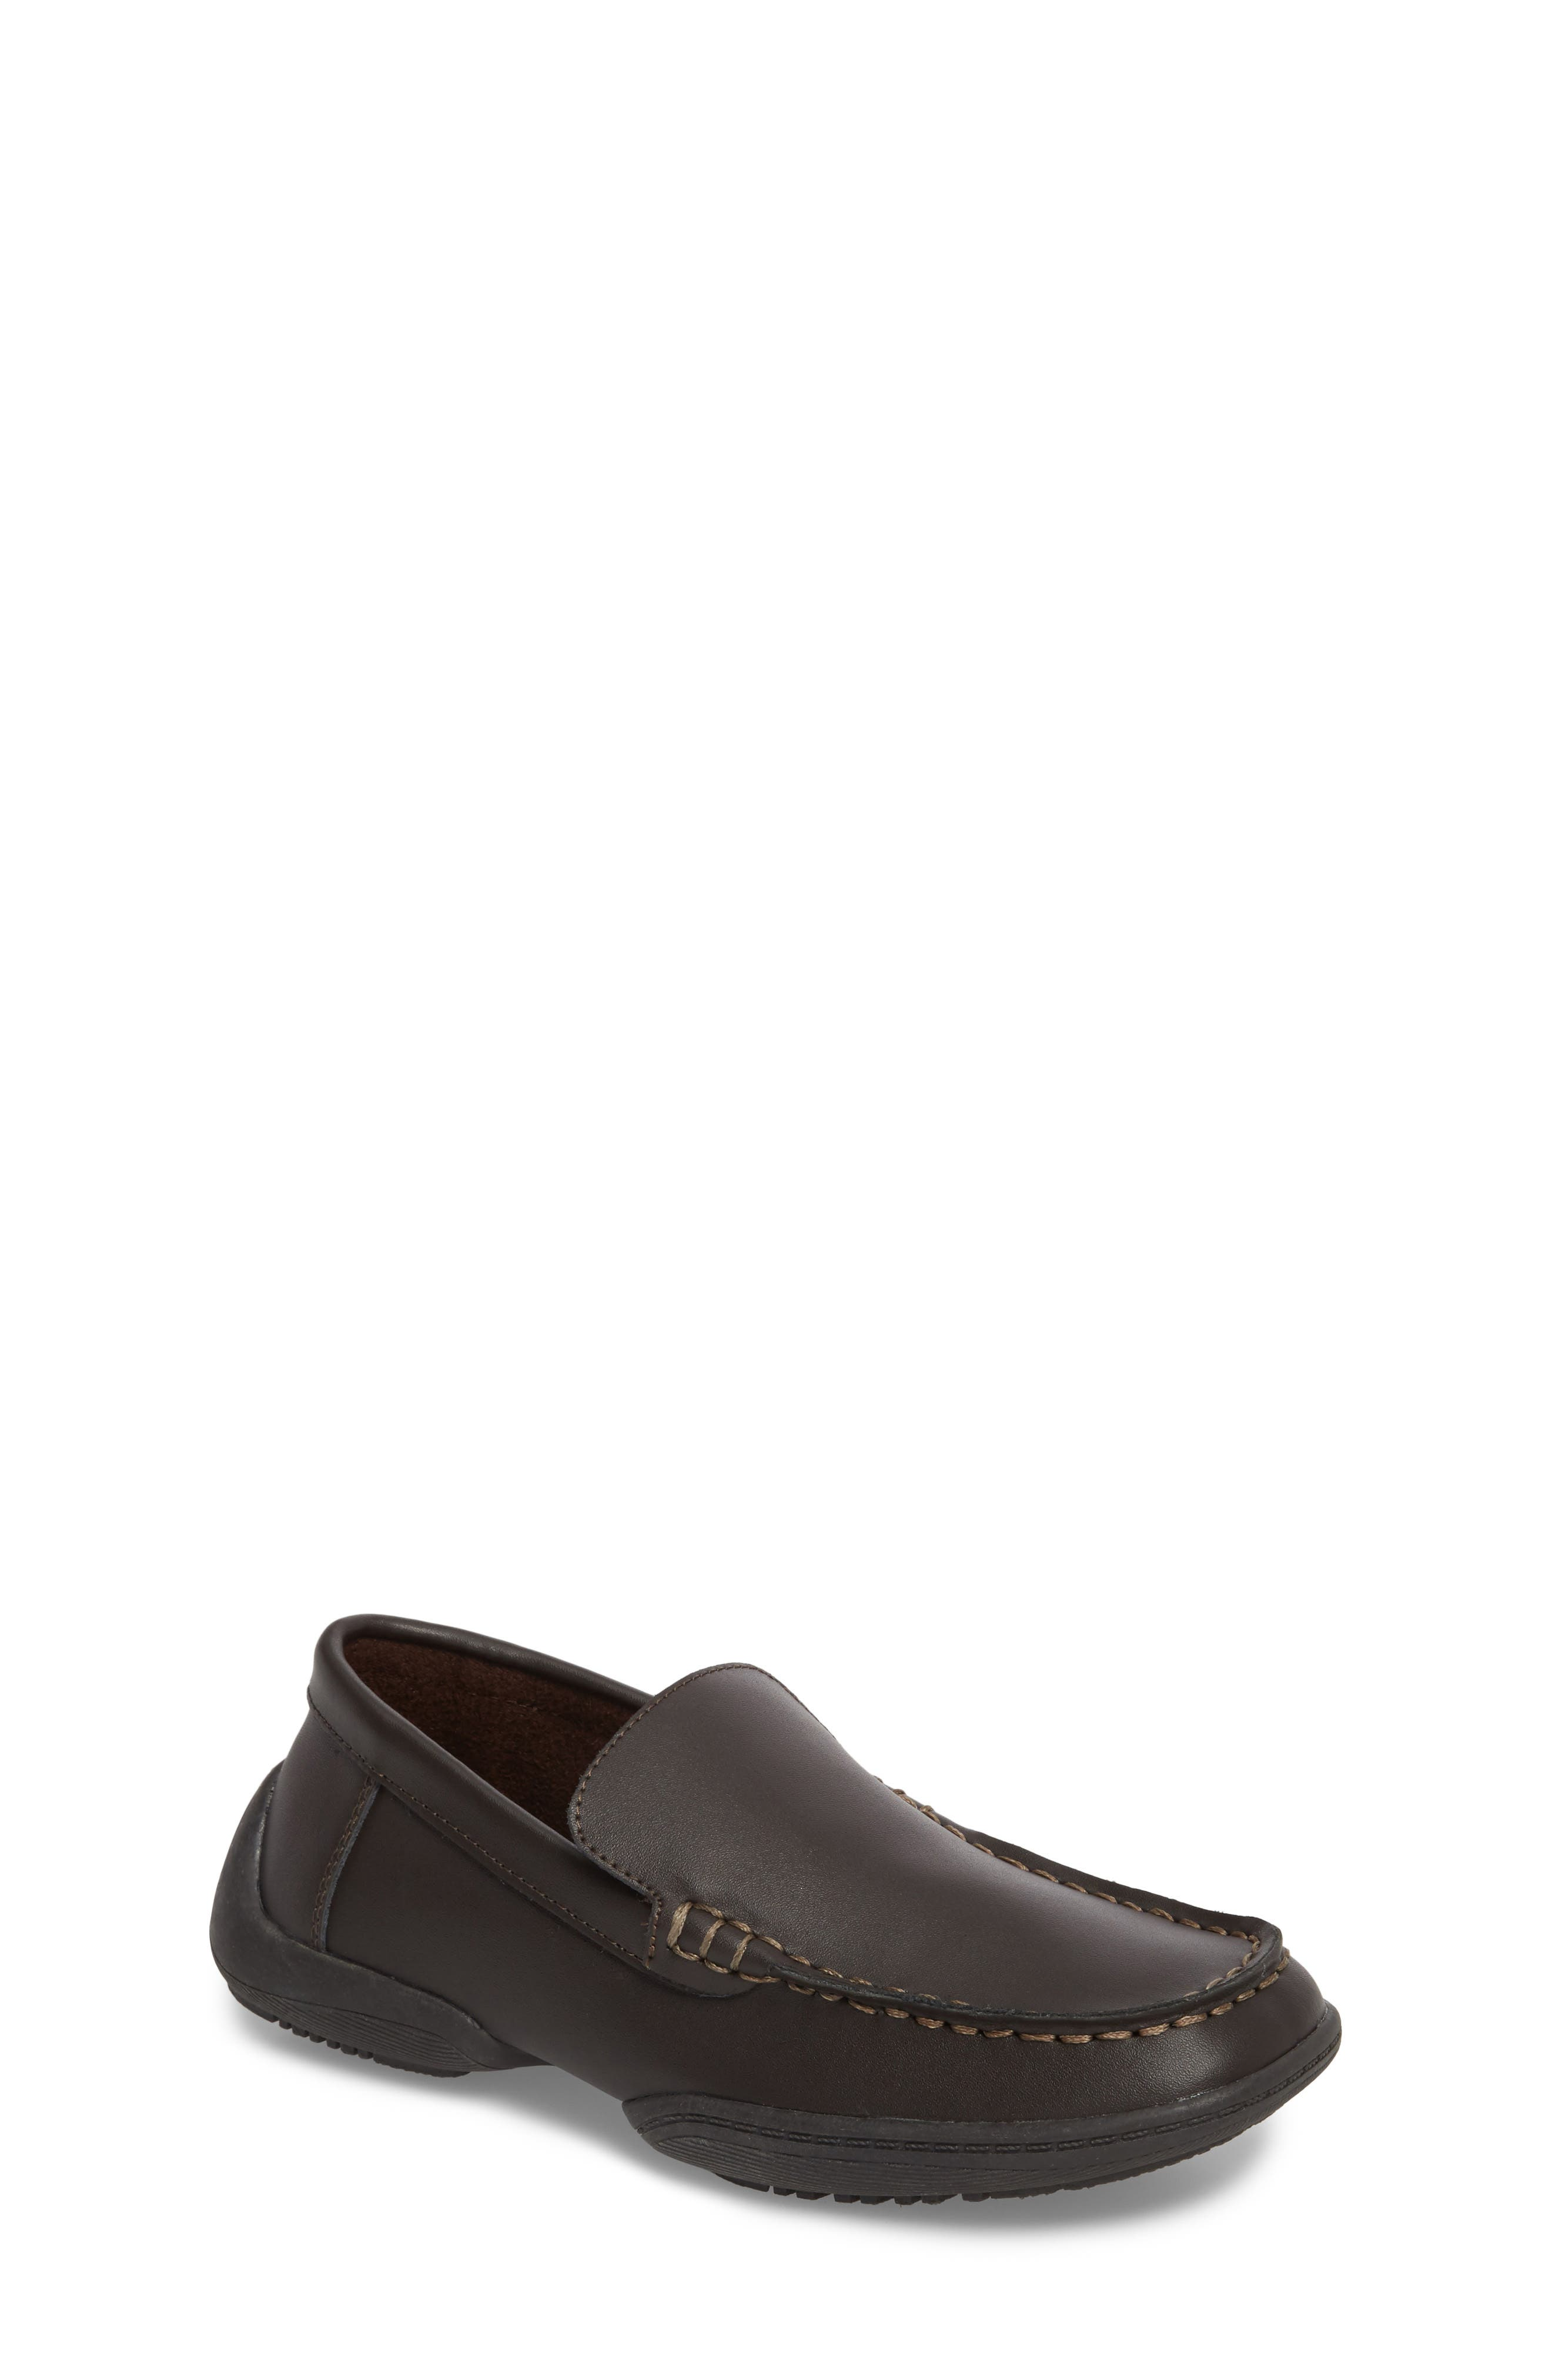 Driving Dime Moccasin,                         Main,                         color, Dark Brown Leather